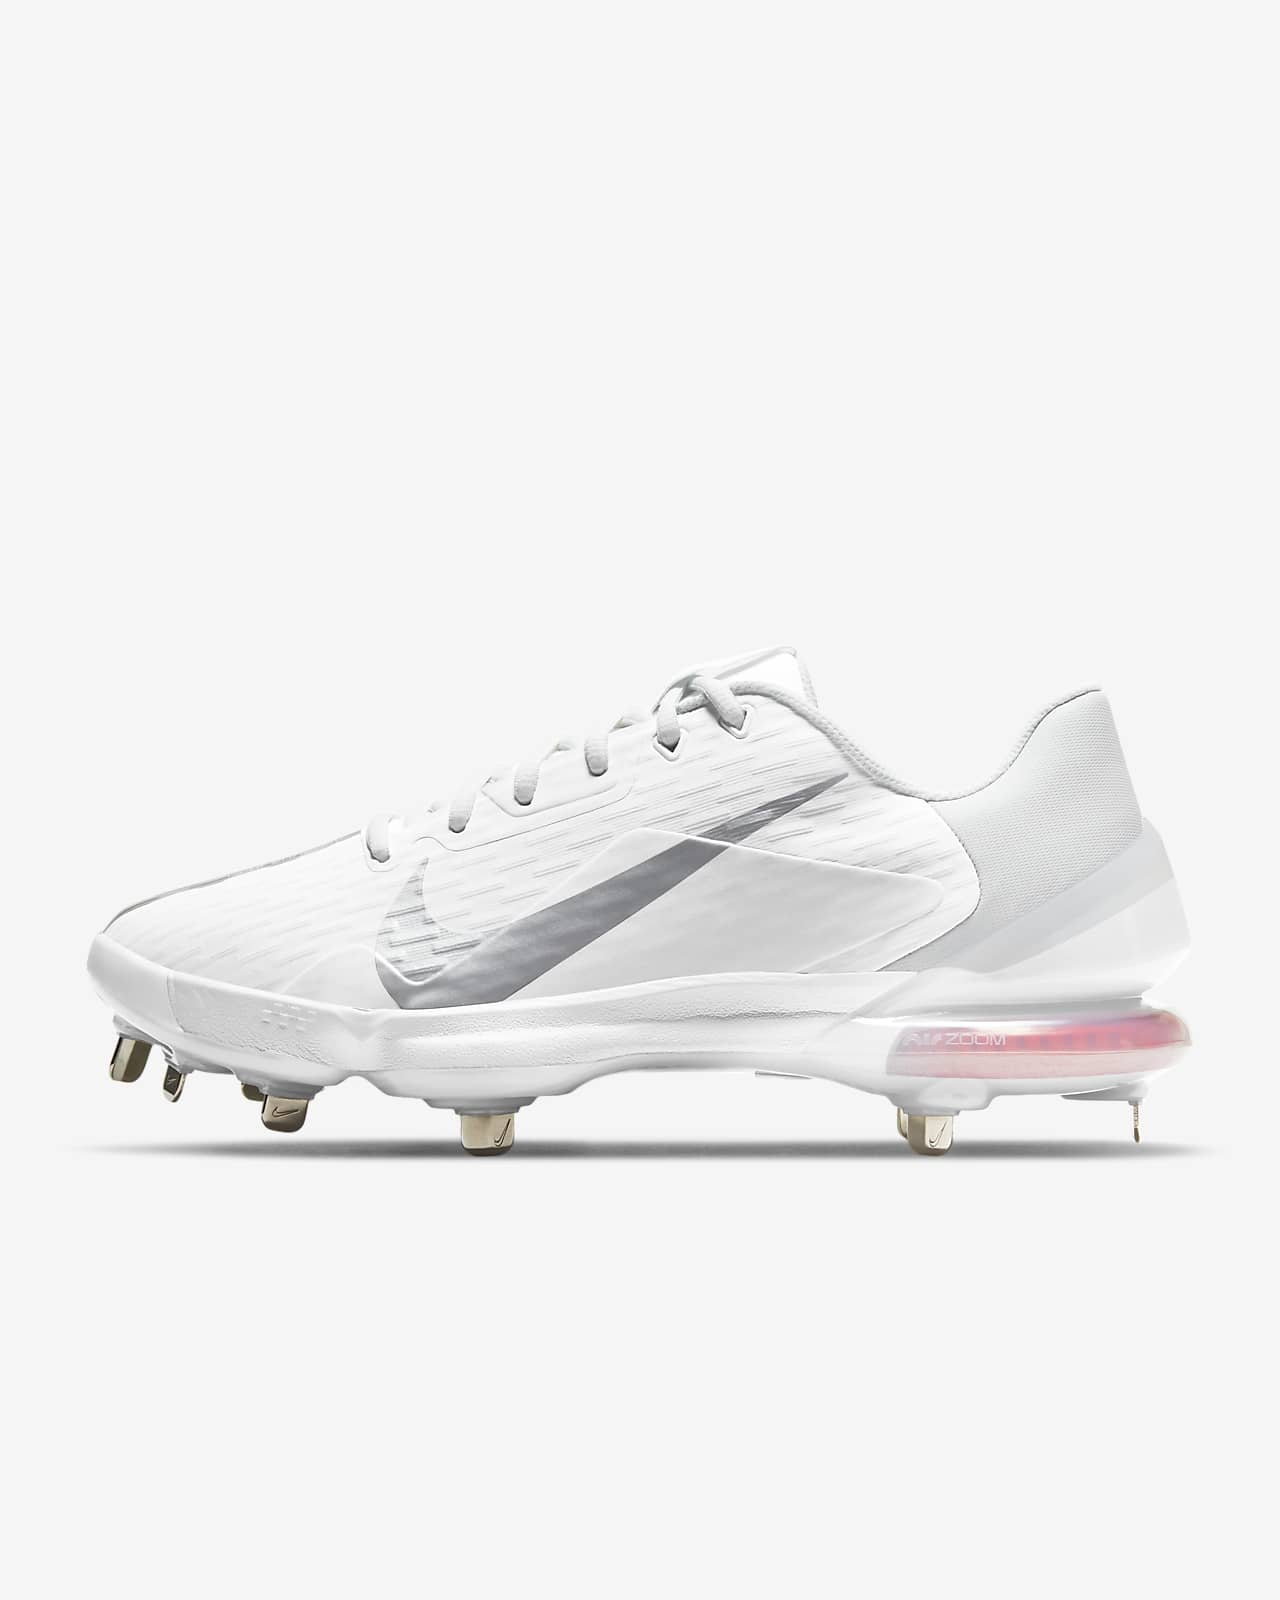 Nike Force Zoom Trout 7 Pro Men's Baseball Cleat